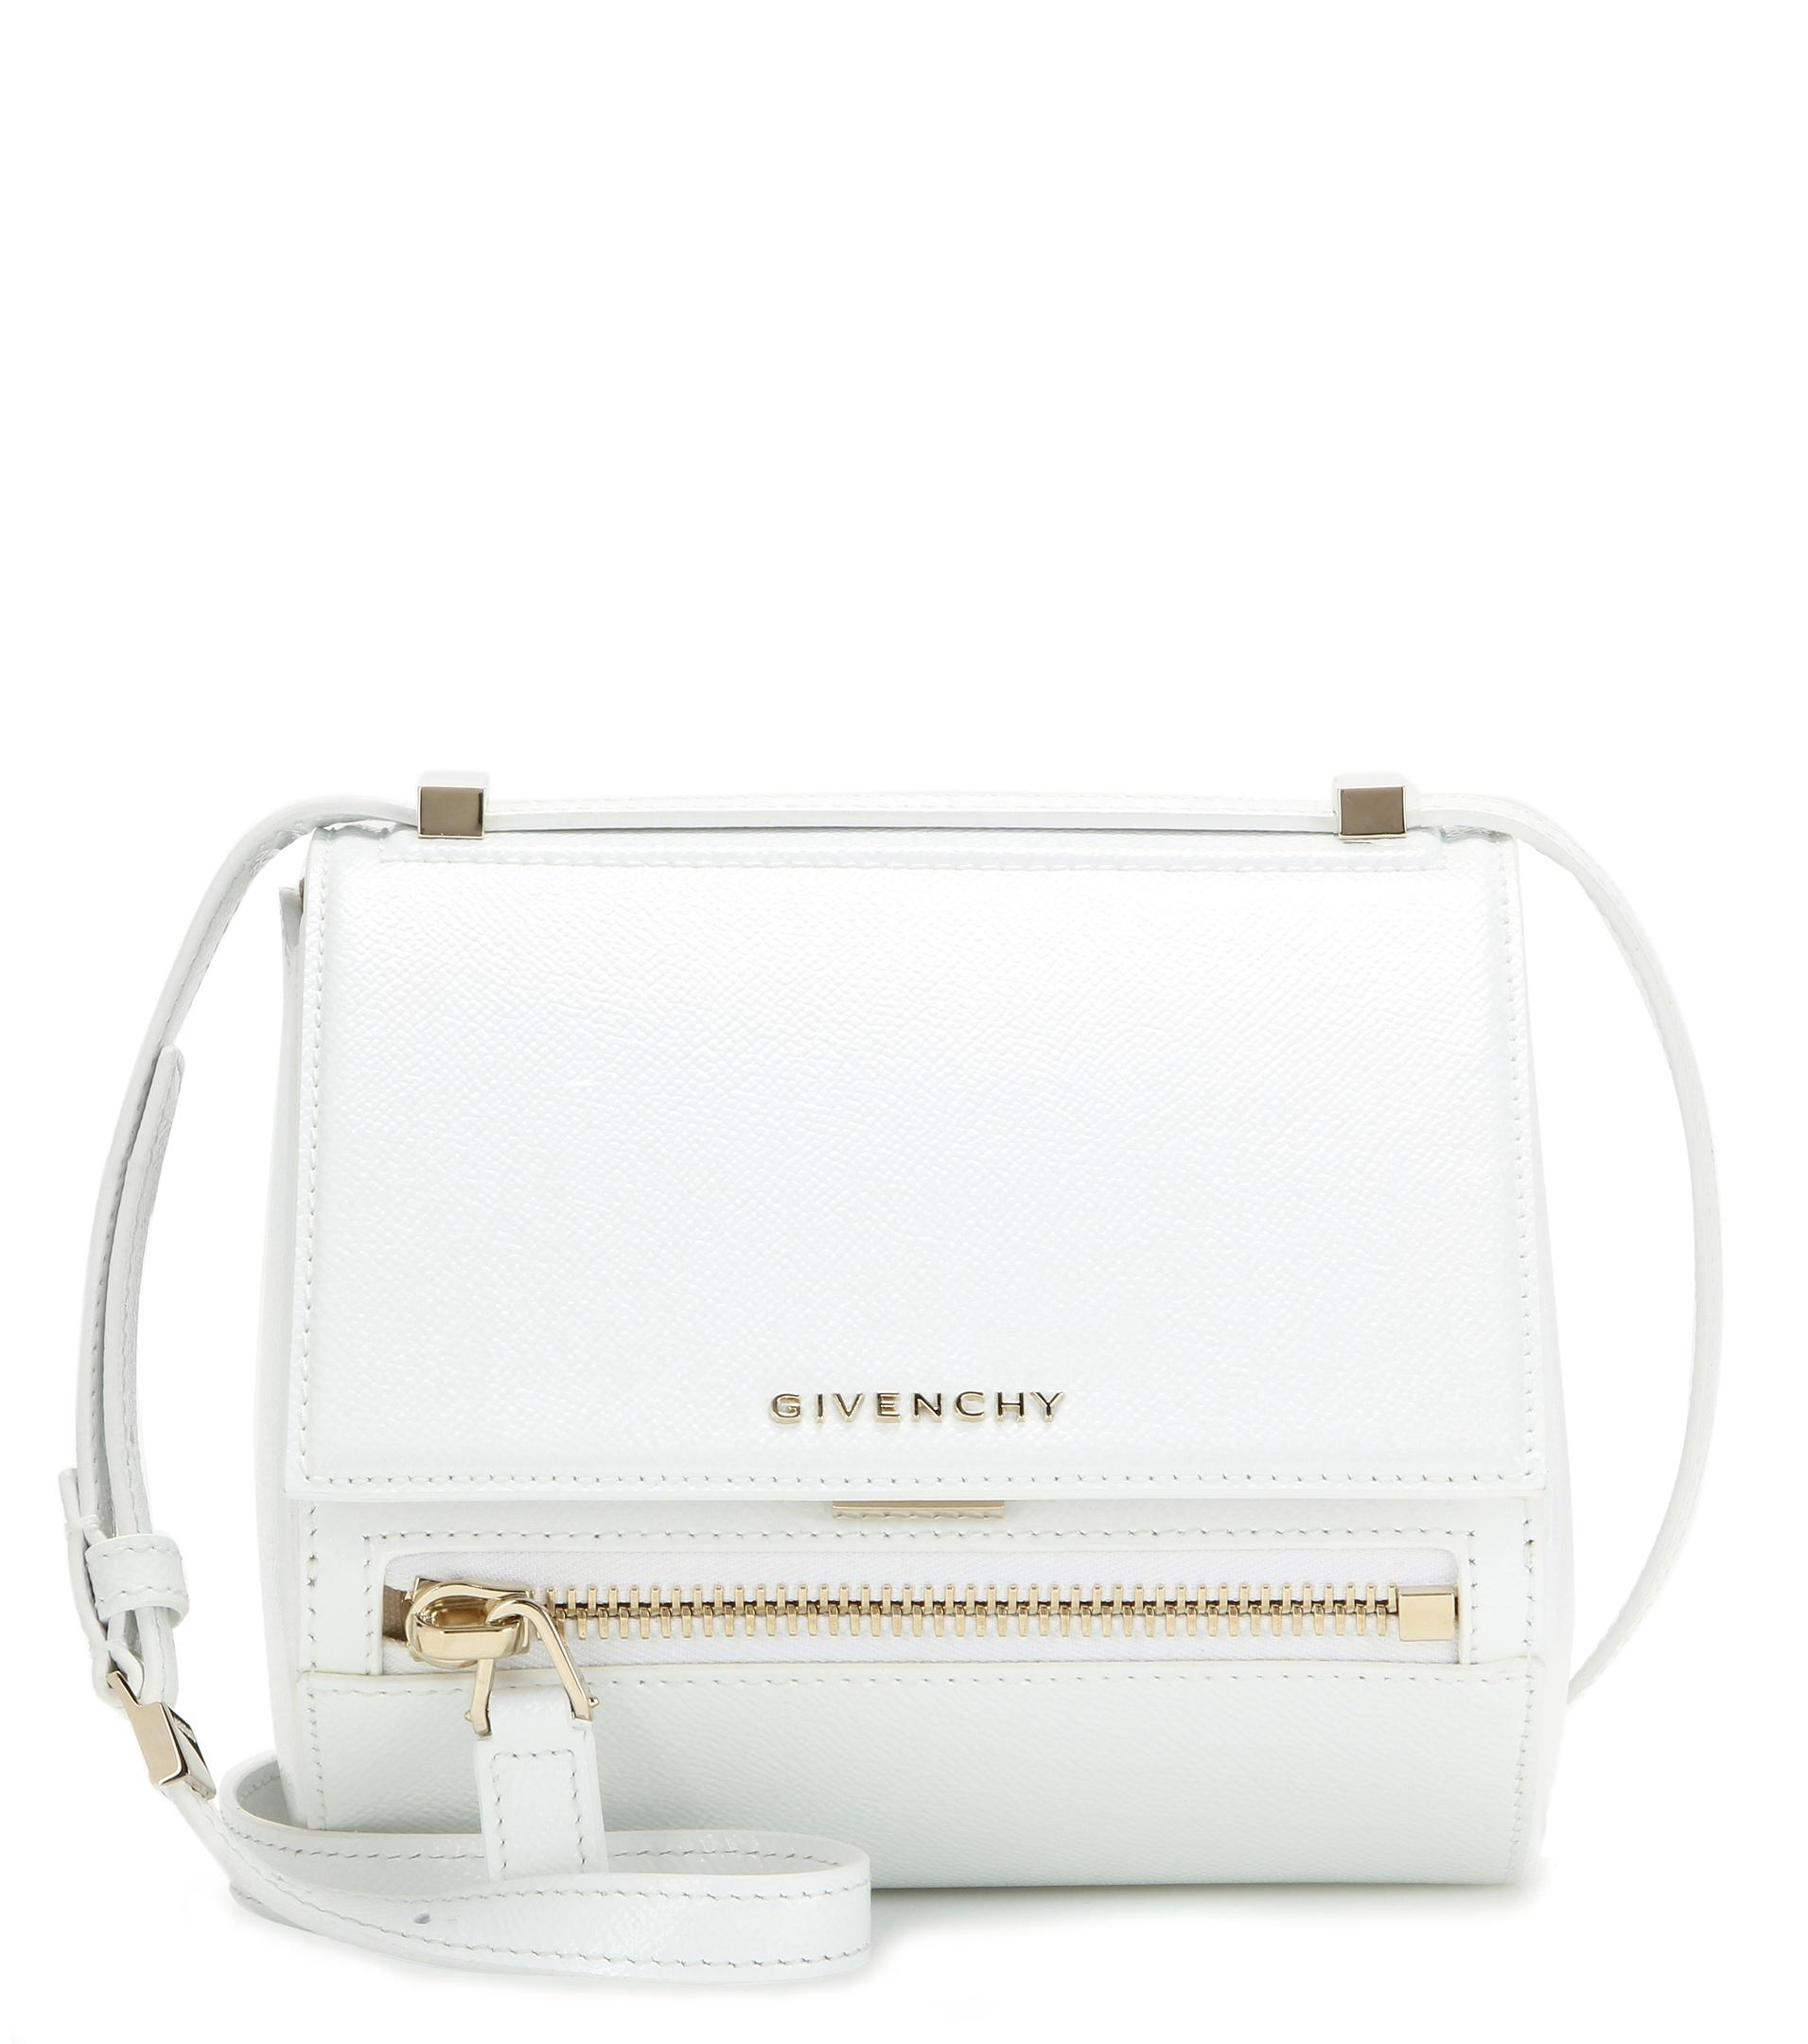 c2c43a0dc3 Lyst - Givenchy Pandora Box Mini Leather Shoulder Bag in White